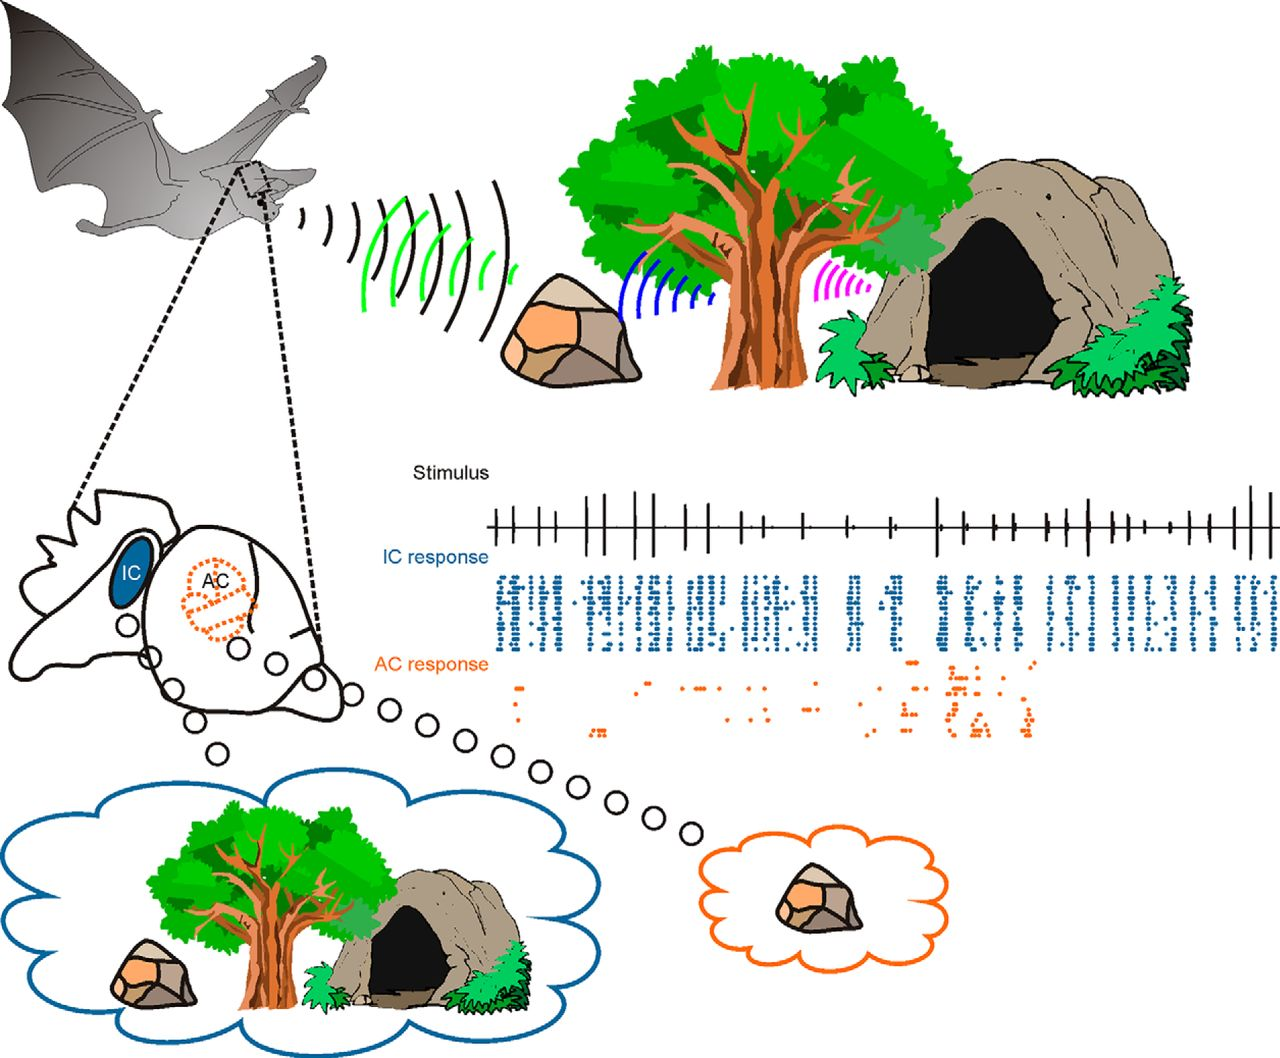 Processing Of Natural Echolocation Sequences In The Inferior Bat Detector Schematics To Make A Download Figure